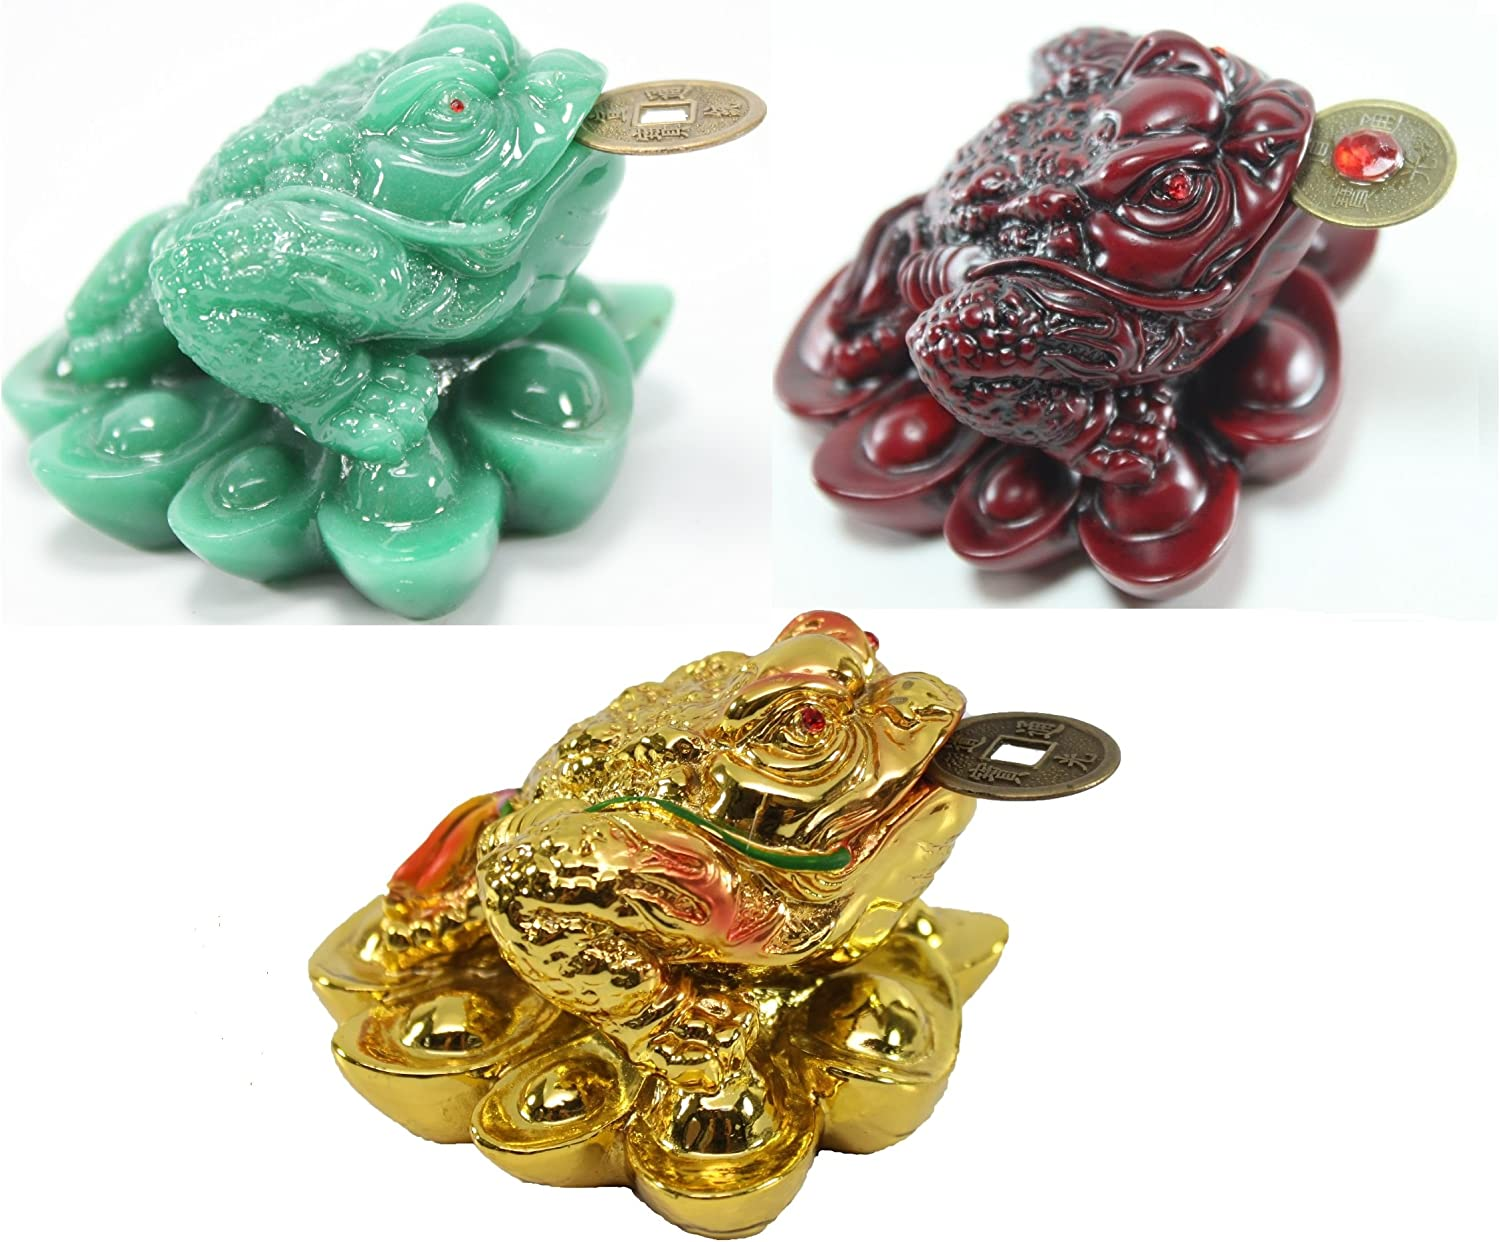 1 Red 1 Green 1 Gold Fortune Coin Money Toad/Frog/Chan Chu~ Feng Shui Chinese Charm of Prosperity Decoration Gift